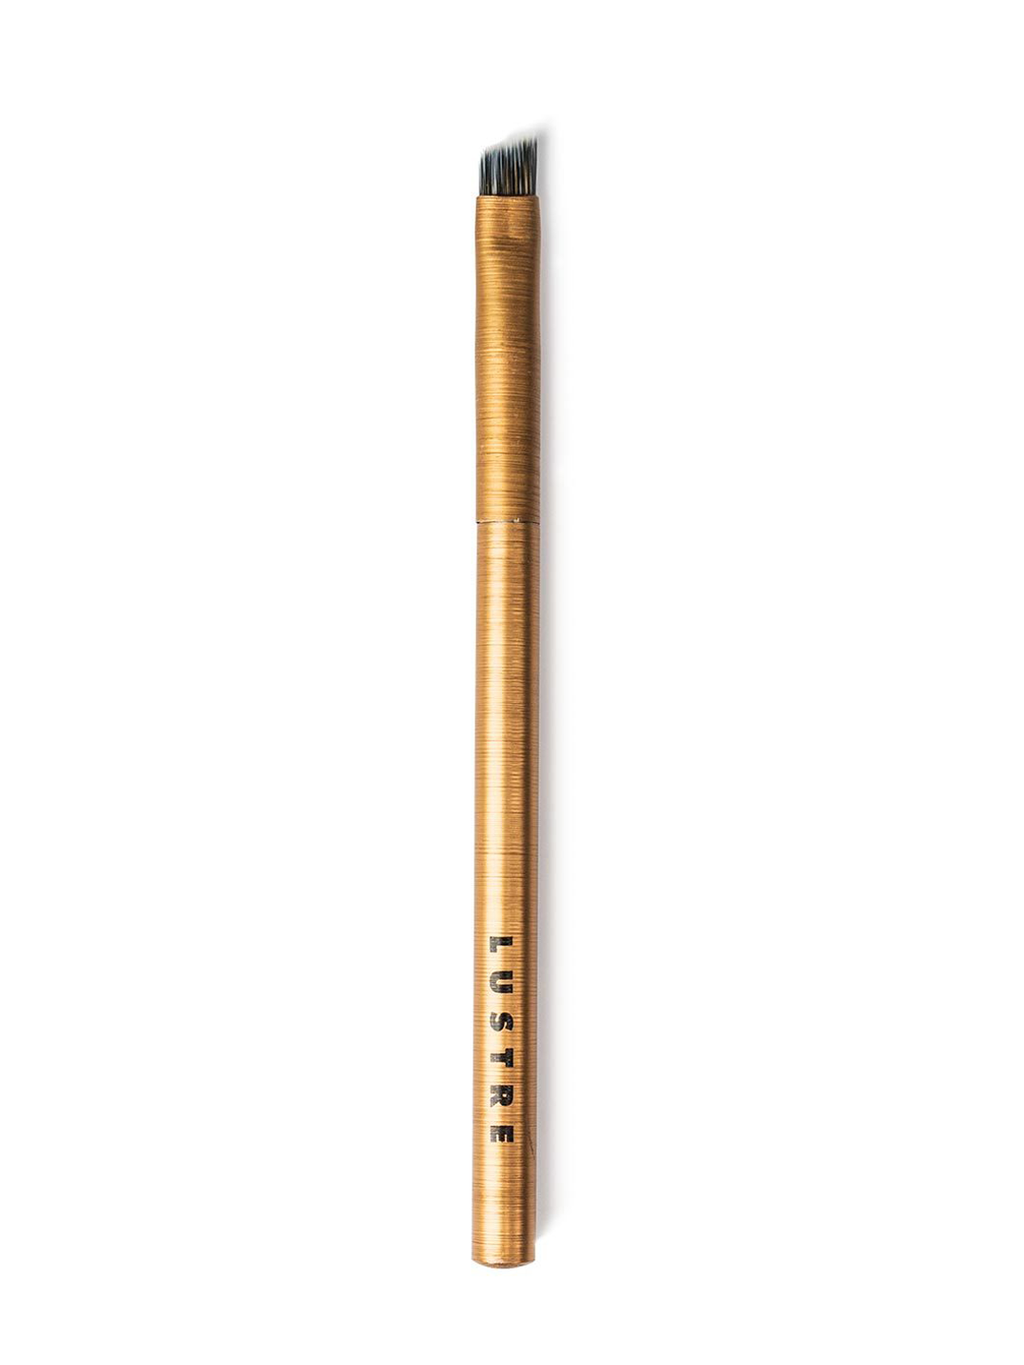 Lustre Pro Makeup Brush E105 Brow Brush